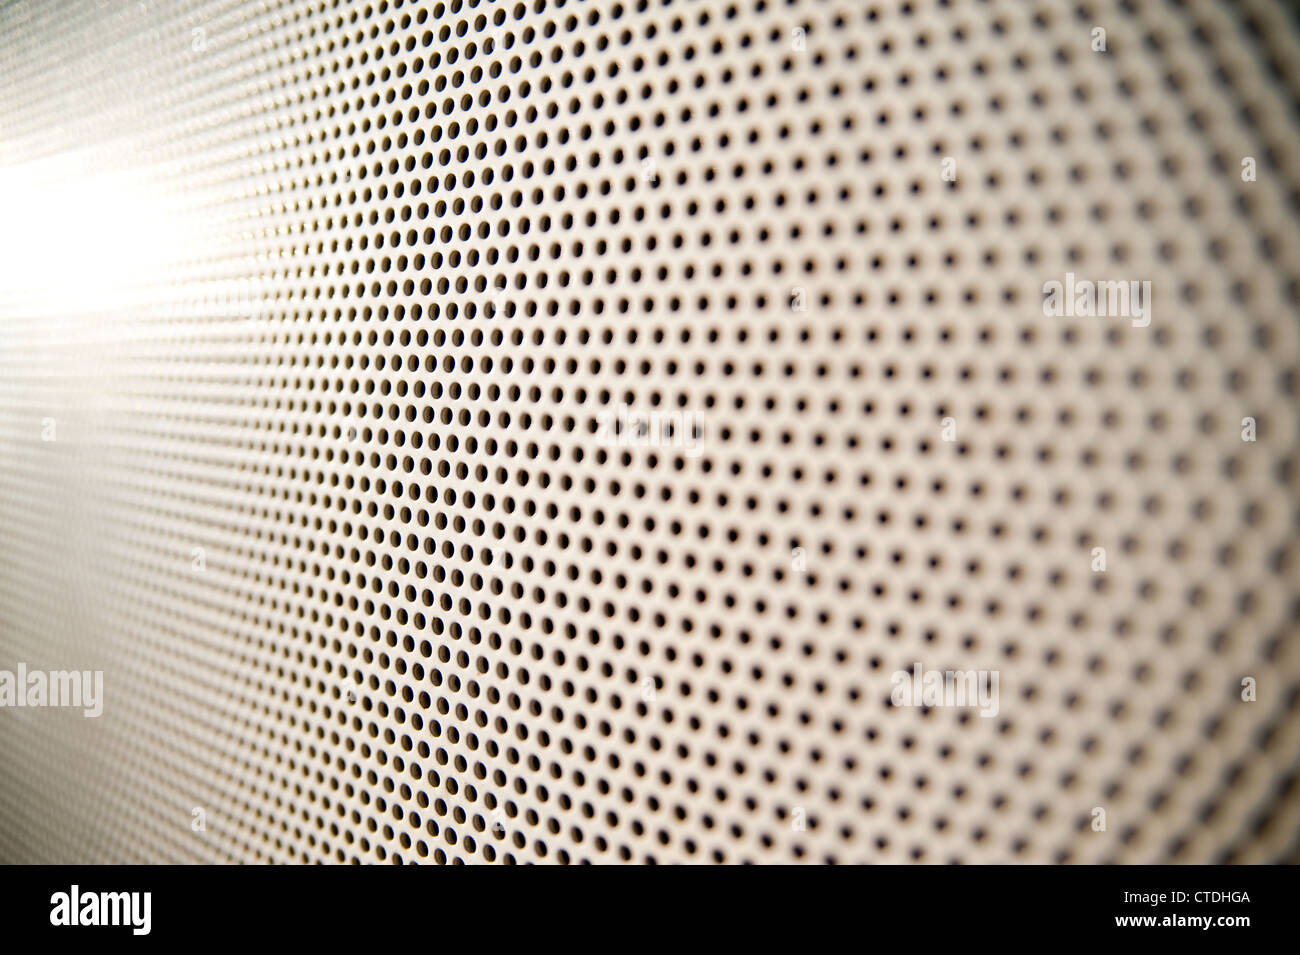 close up of perforated pattern with selective focus - Stock Image